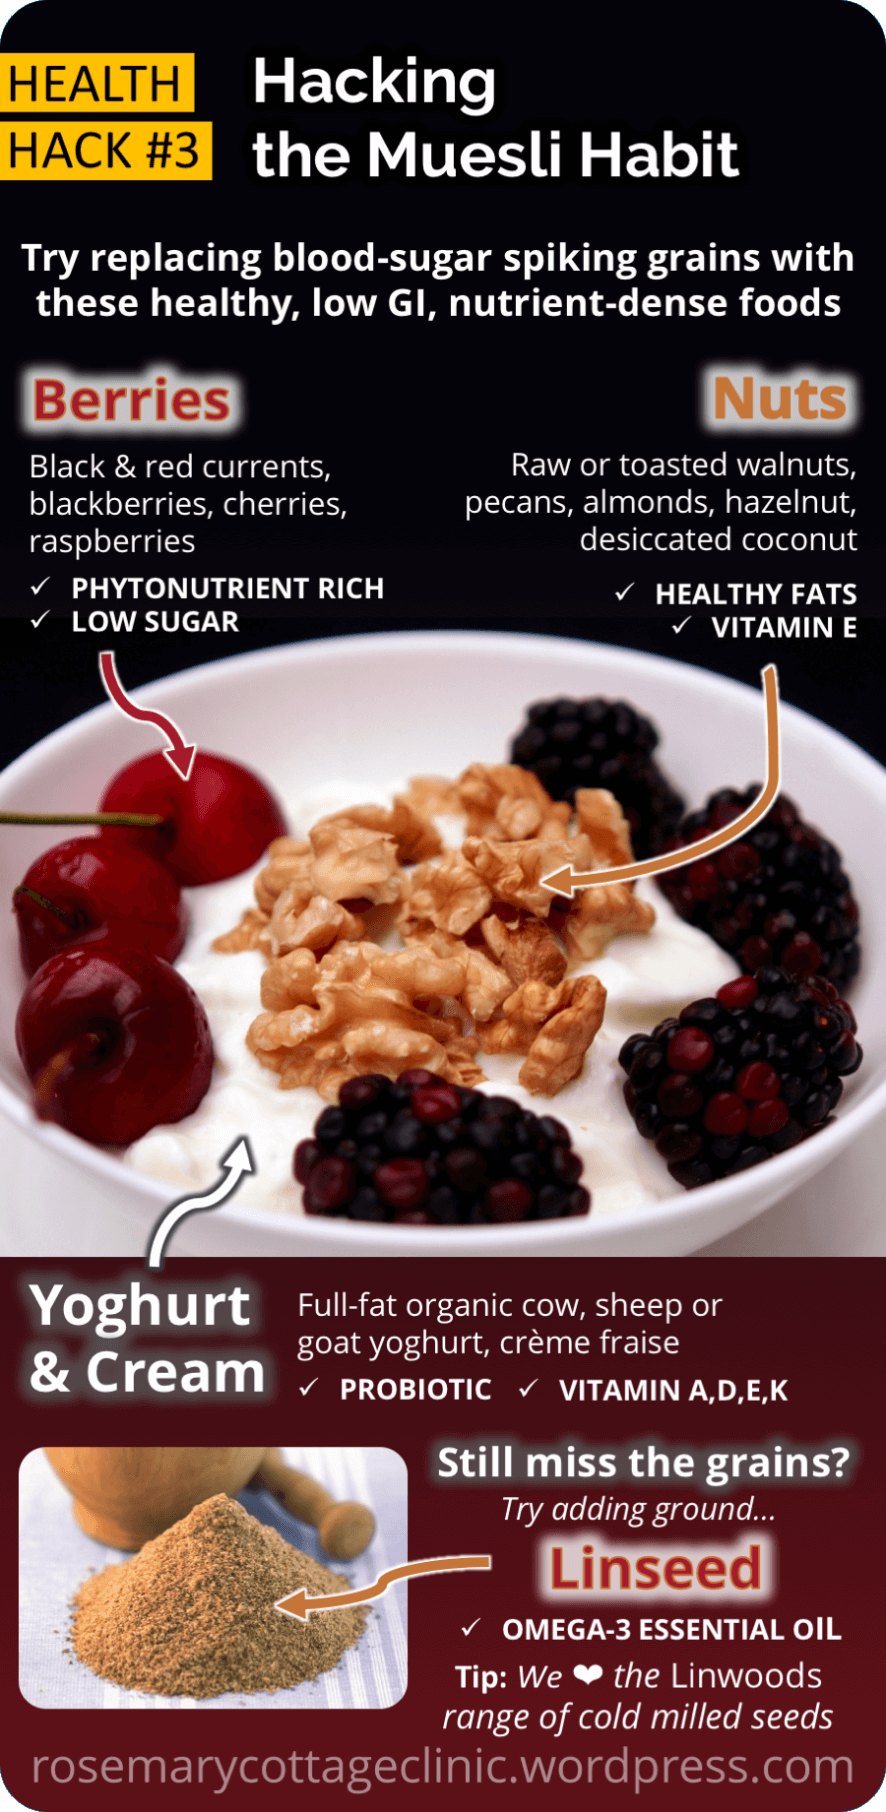 An infographic showing how to make a grain-free, gluten-free muesli using seeds, nuts and yoghurt.